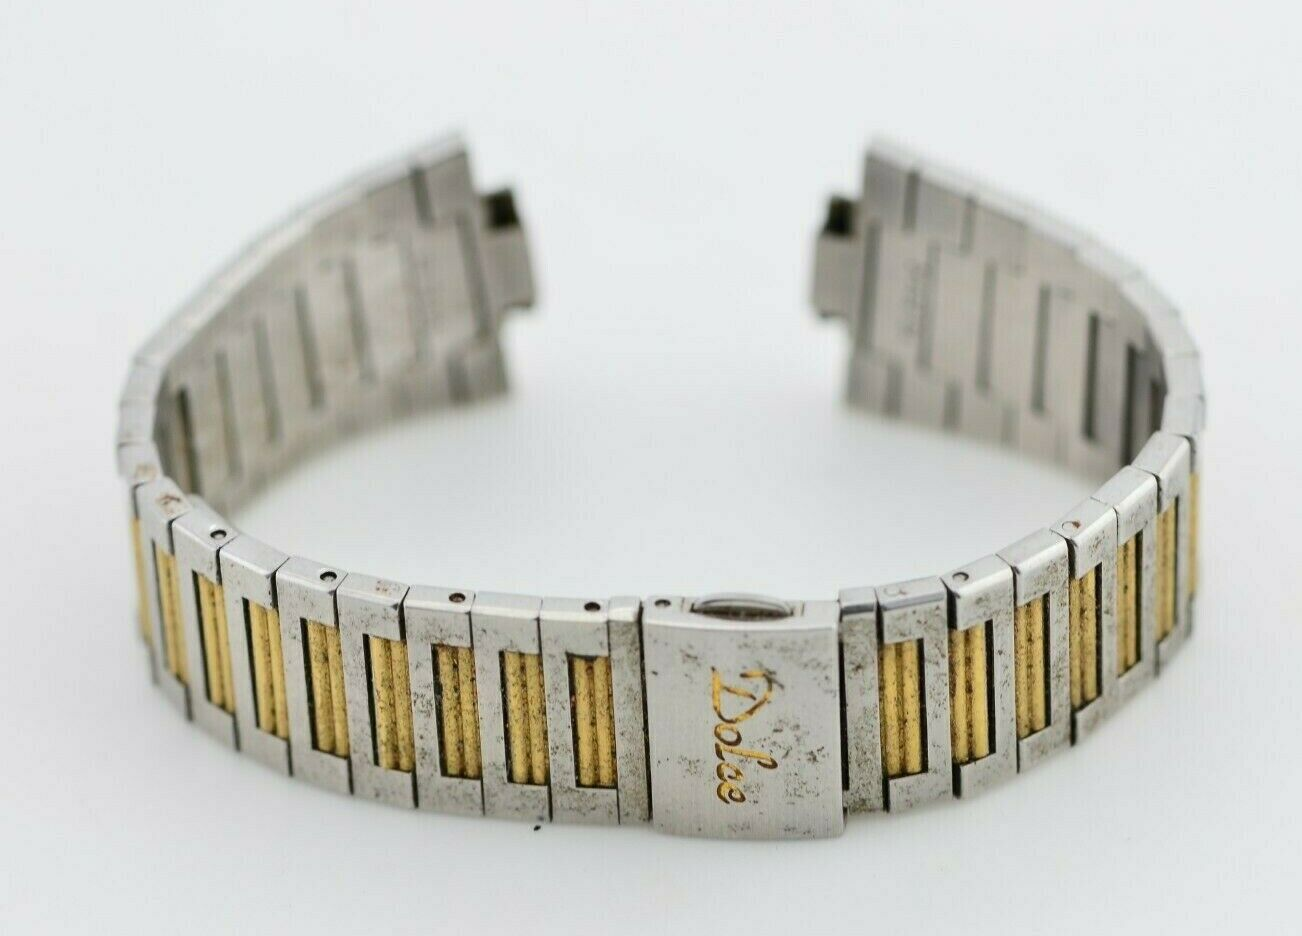 H505 10mm Vintage Seiko Dolce Watch Bracelet Stainless Steel JDM Japan 77.1